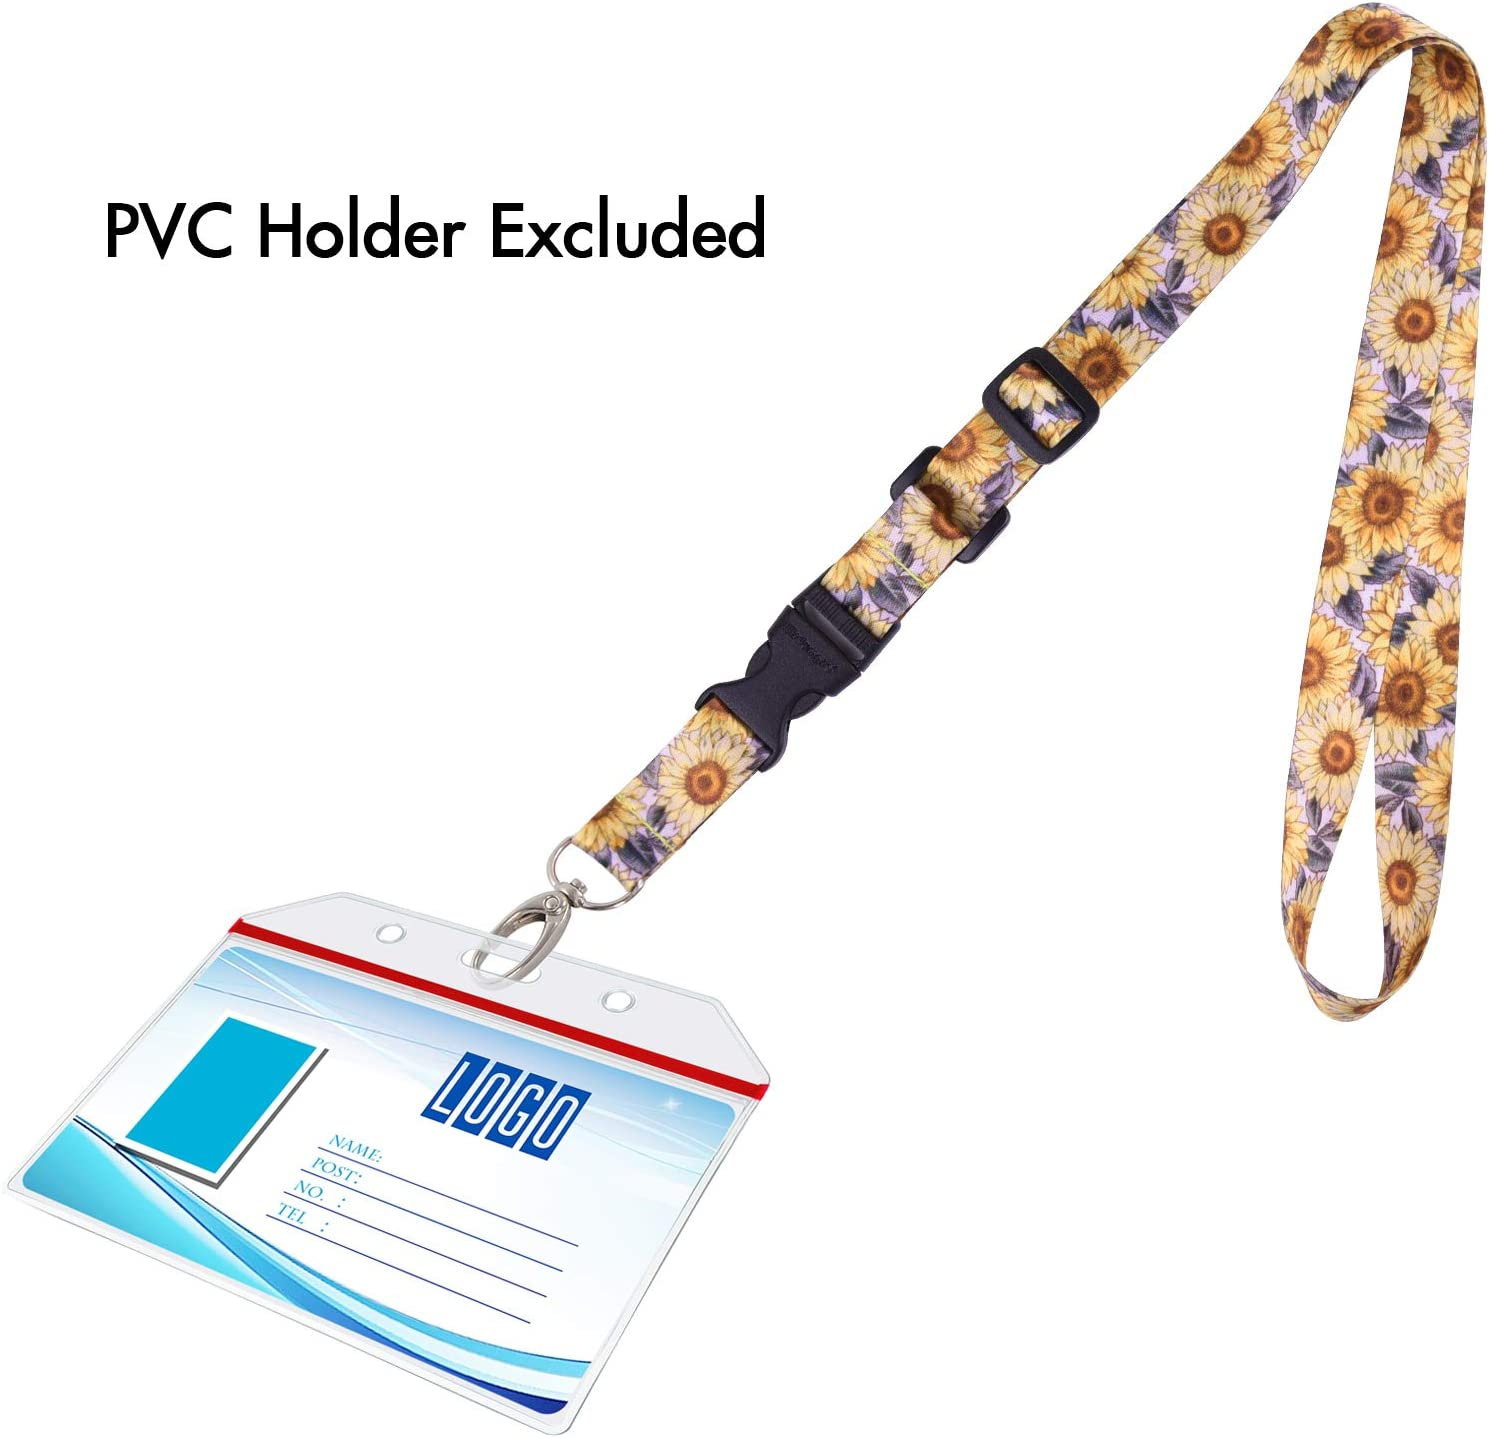 Name Tag Company Badge Holder Polyester Neck Strap with Oval Clasp and Detachable Buckle for ID Wisdompro Adjustable Length Office Lanyard Black and Powder Blue and Keys